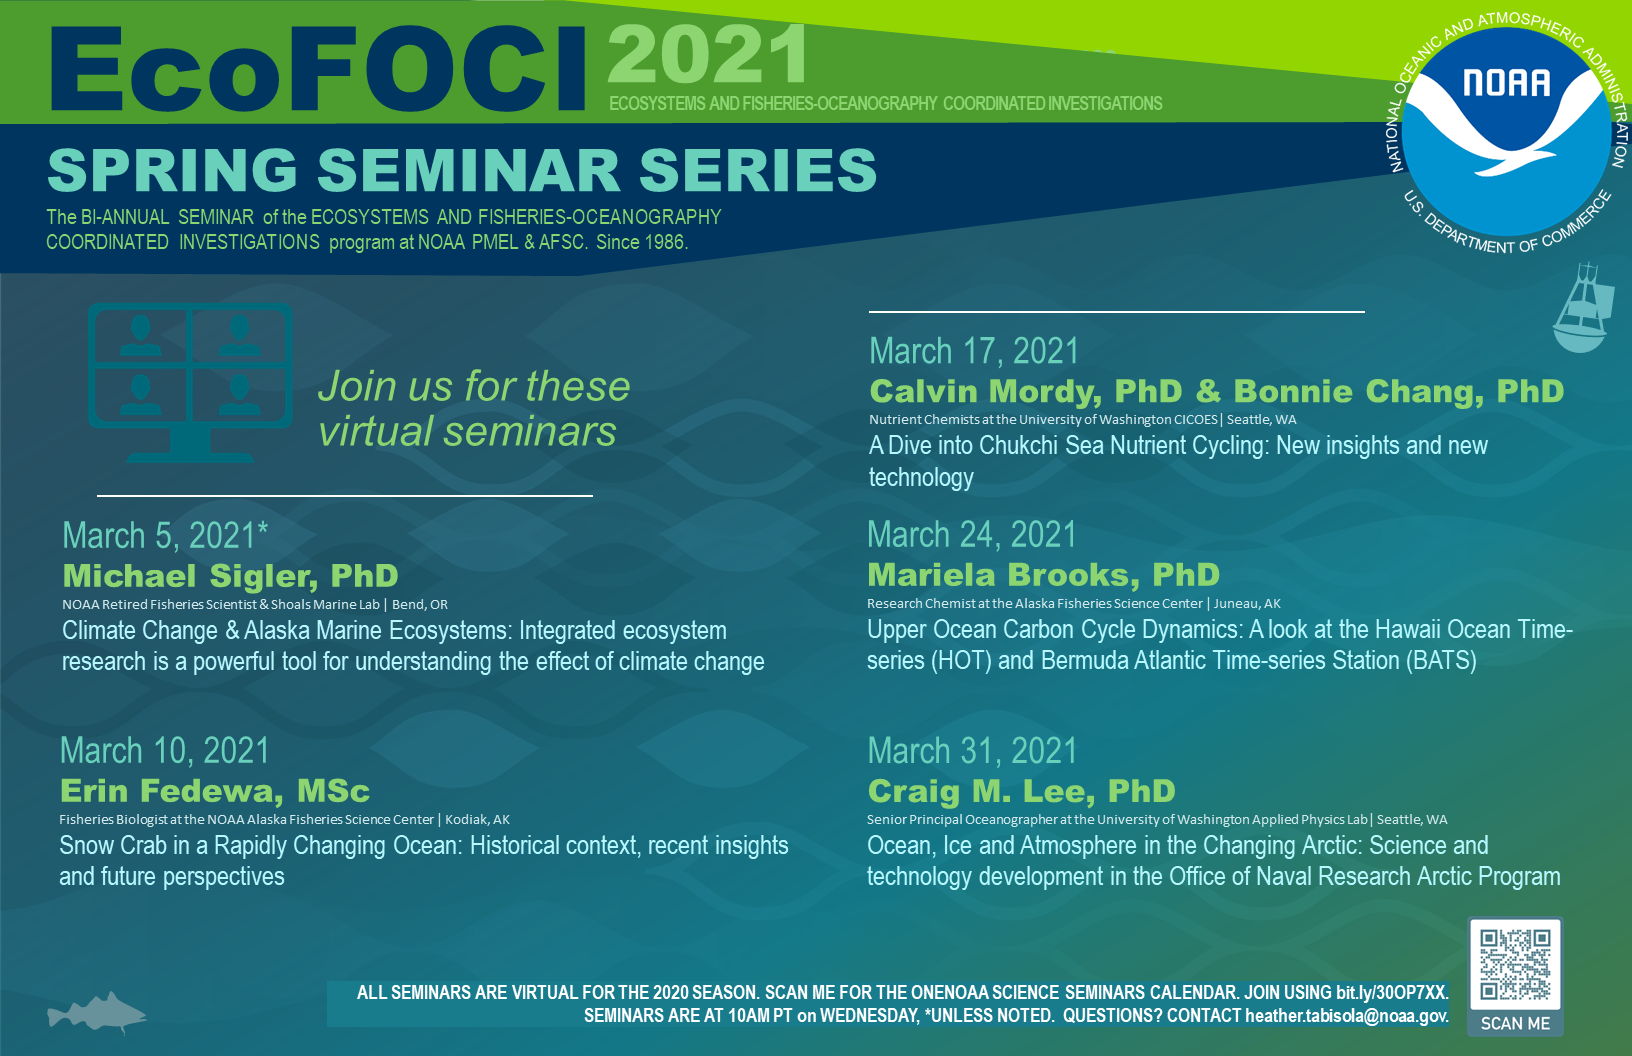 Flyer on teal background listing all of the speakers for the EcoFOCI Spring Seminar Series